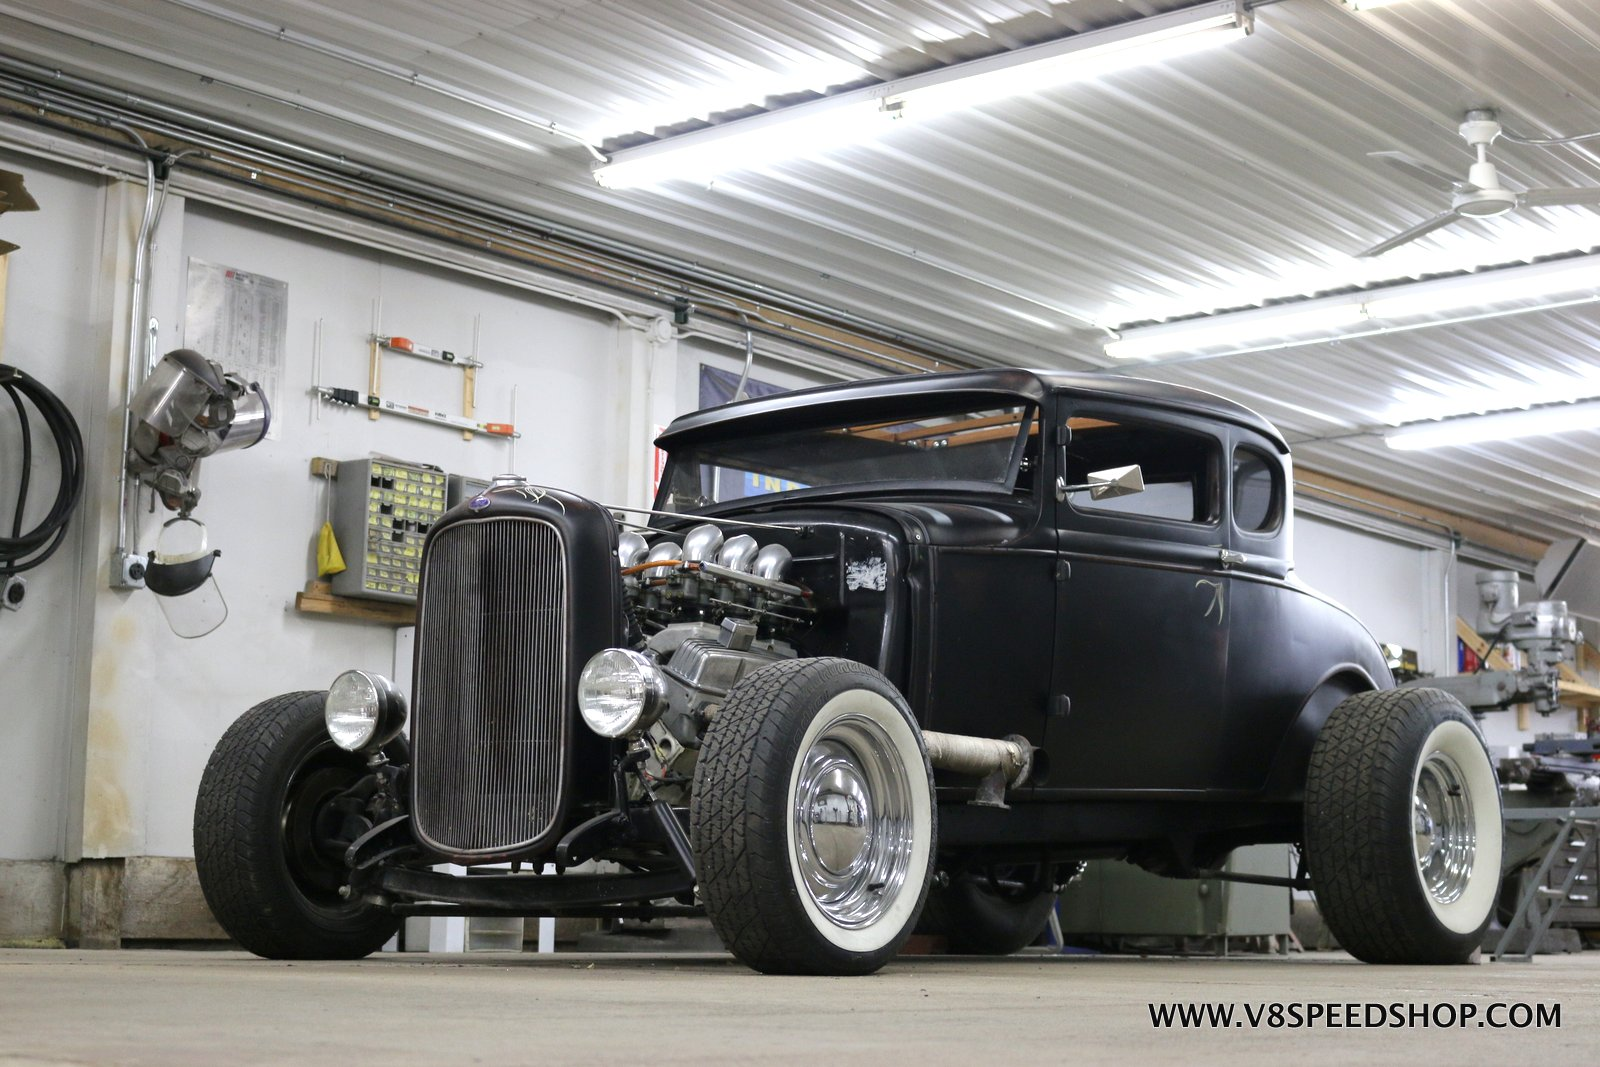 1930 Ford Model A Hot Rod at the V8 Speed and Resto Shop